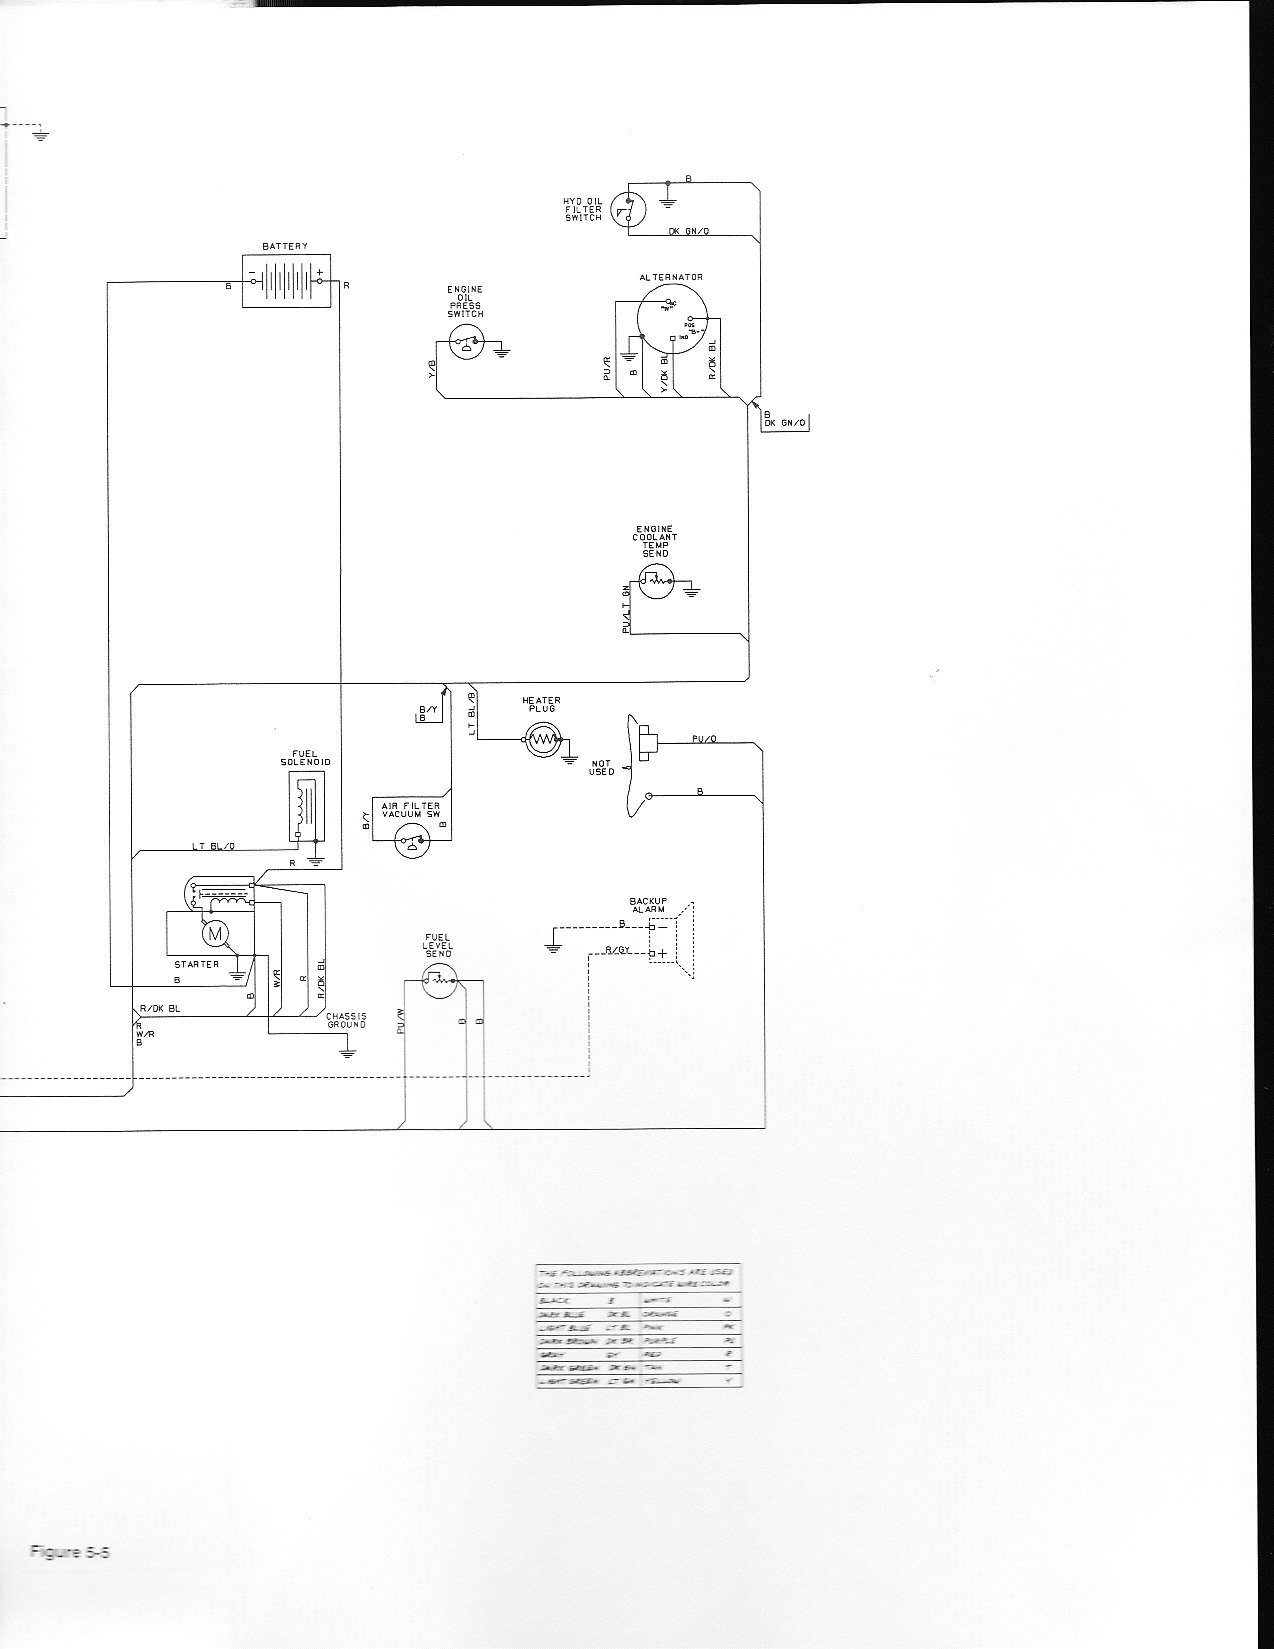 Gehl Ctl Manual Wiring Diagram on gehl ctl 75 specs, gehl ctl70,